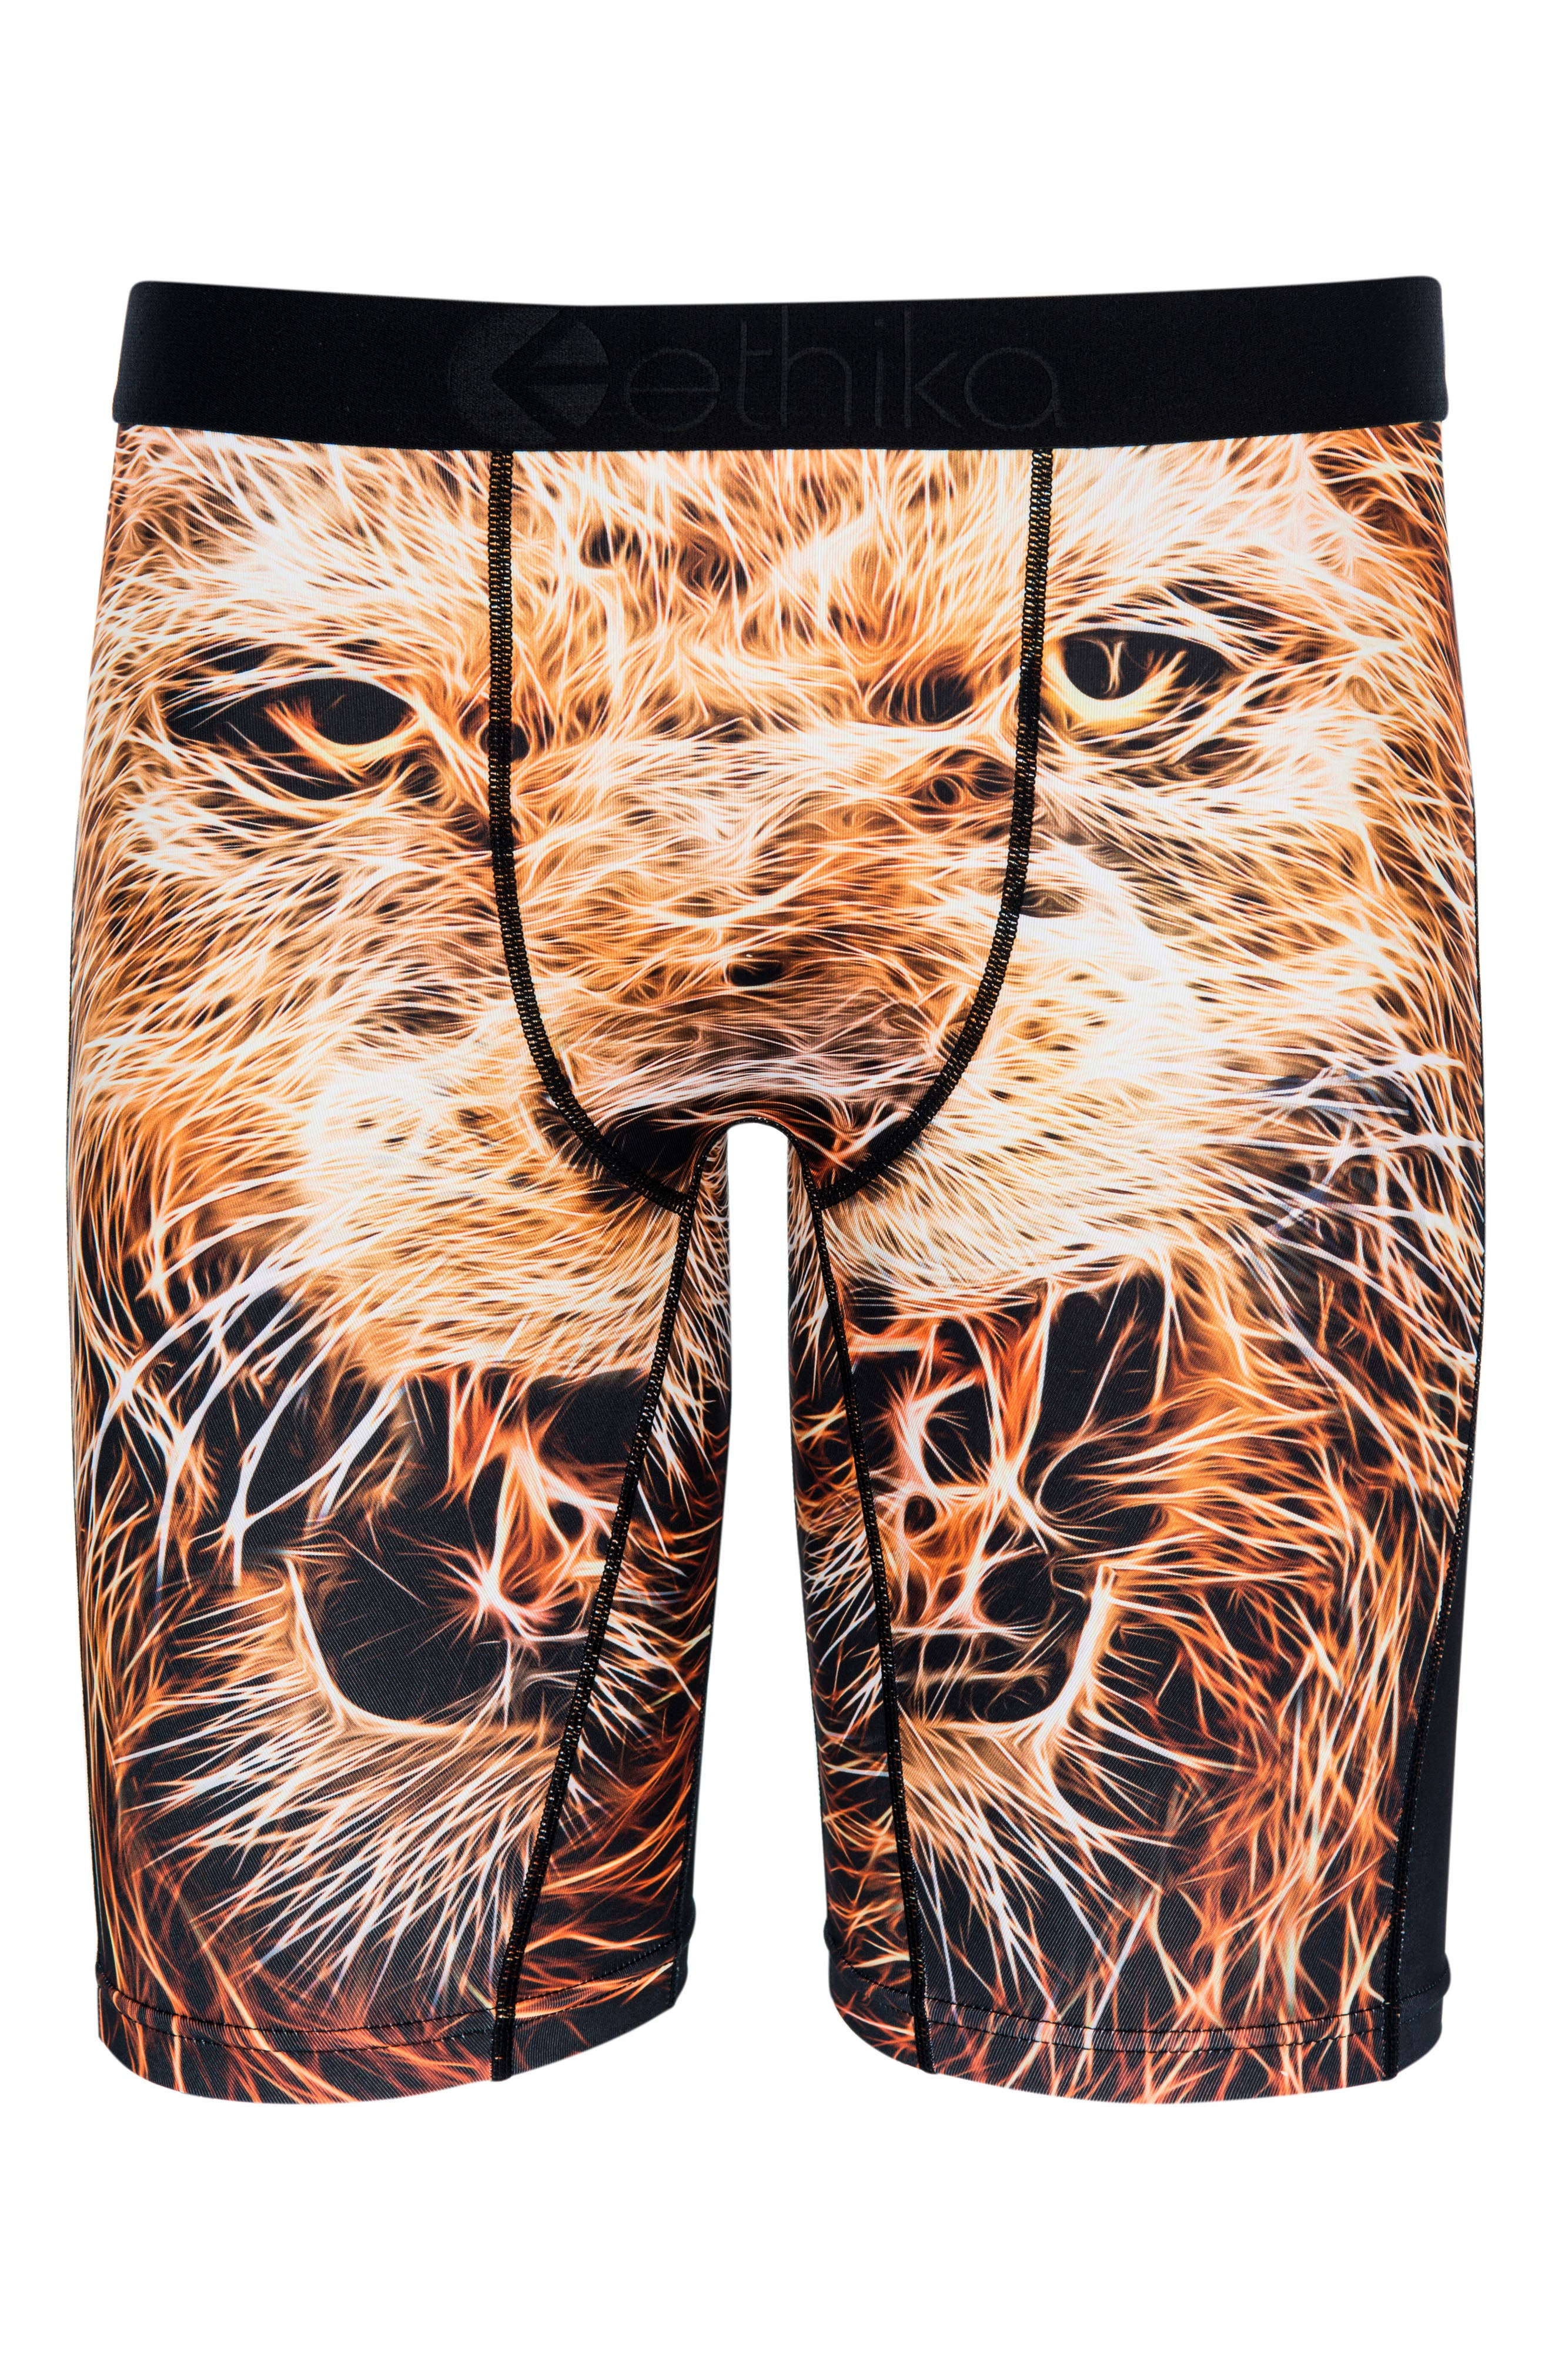 Ethika Pride Boxer Briefs (Little Boys & Big Boys)